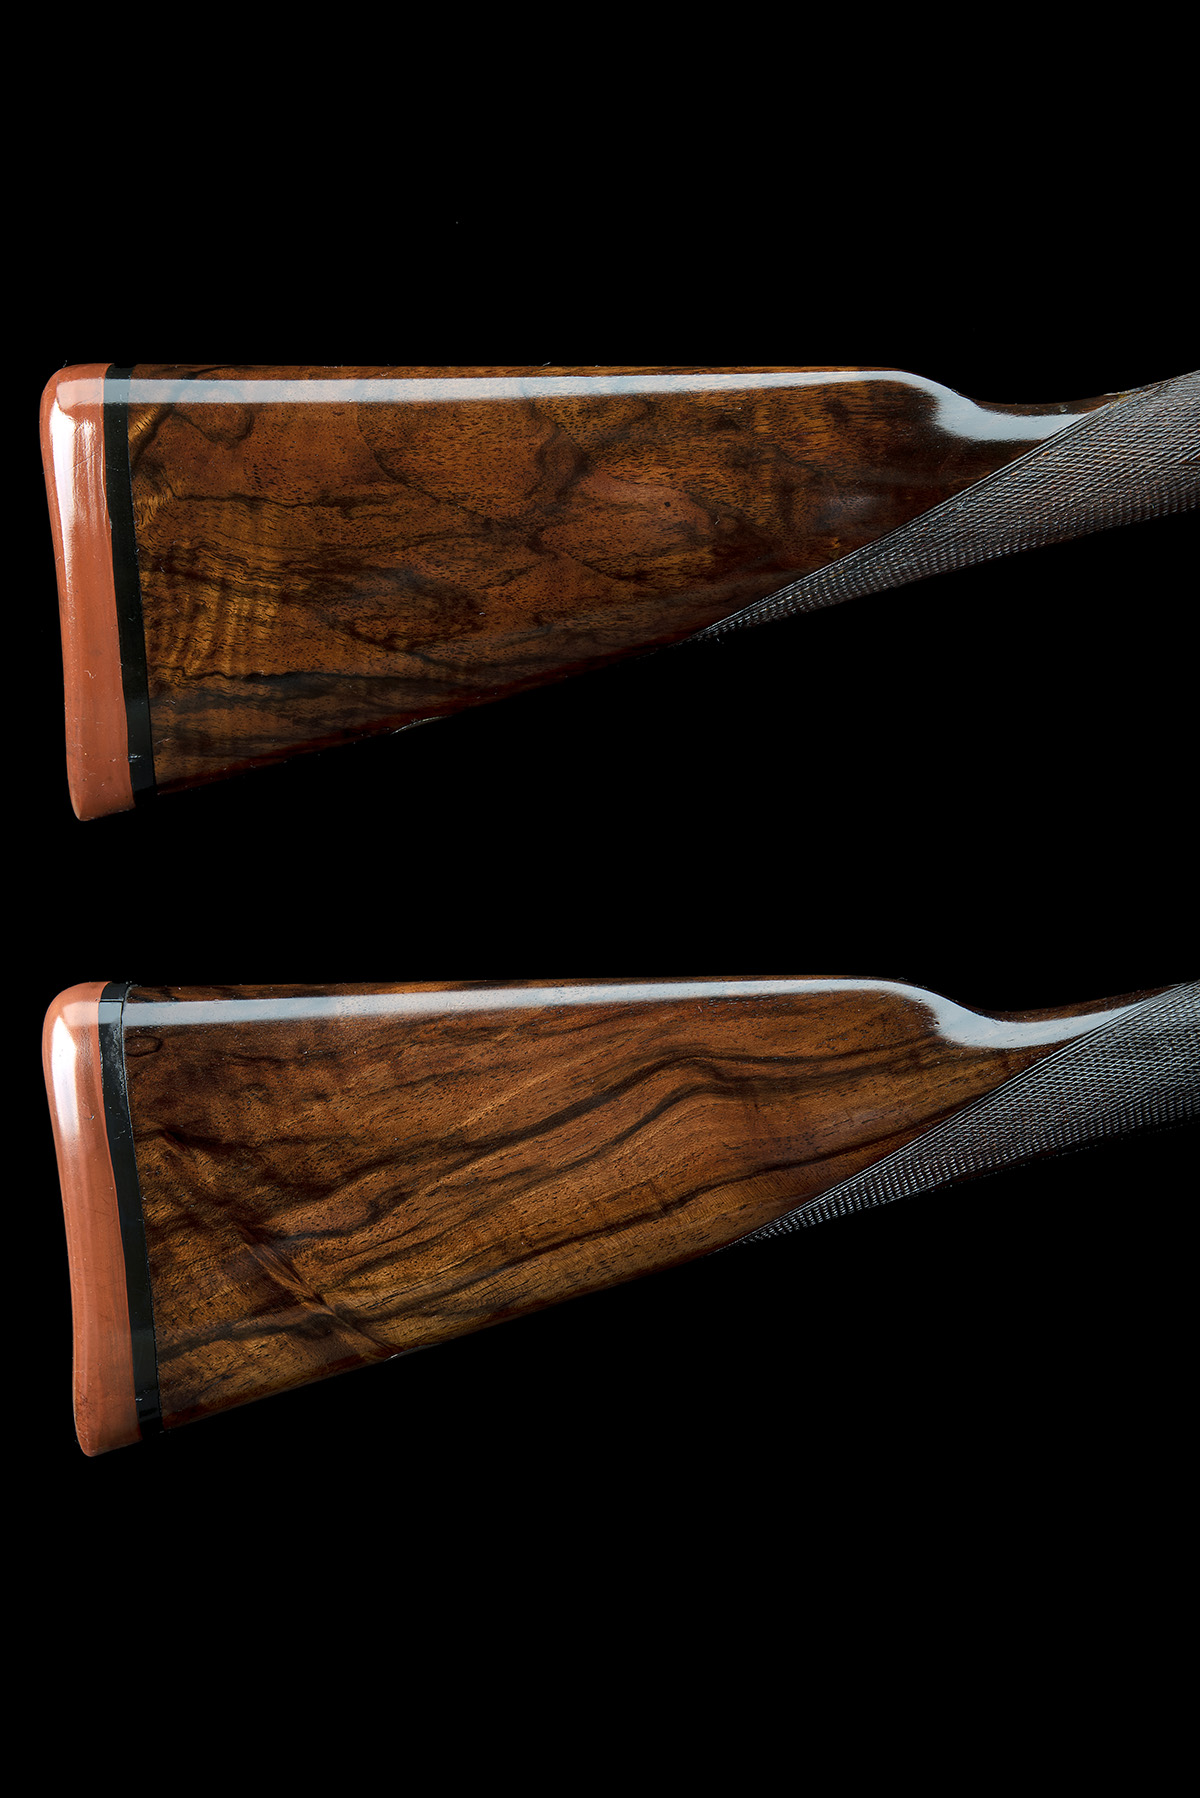 B. NORMAN A PAIR OF 12-BORE SIDELOCK EJECTORS, serial no. 2051 / 2, first quarter of the 20th - Image 7 of 8